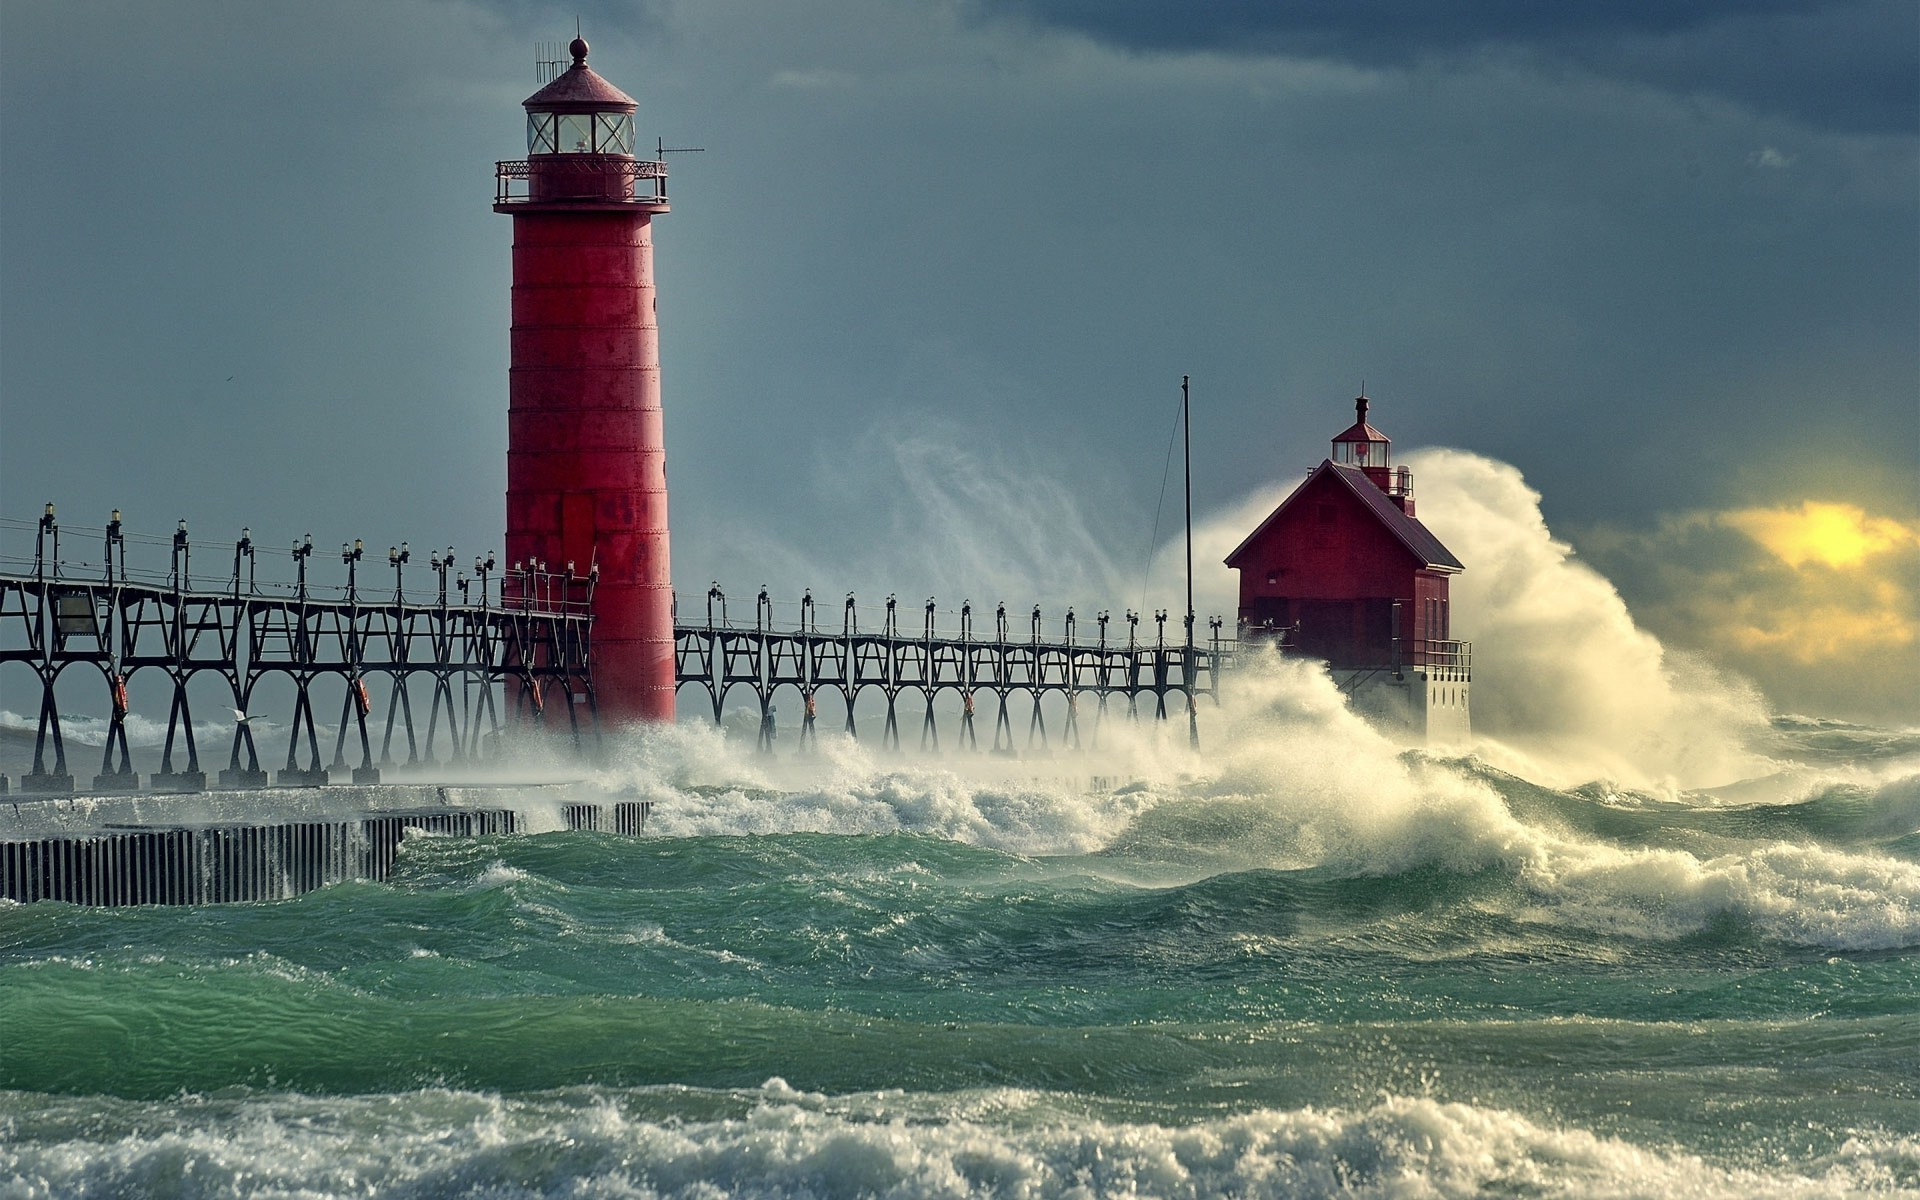 Deep House Girl Wallpaper Red Lighthouse Can Withstand The Onslaught Of The Waves